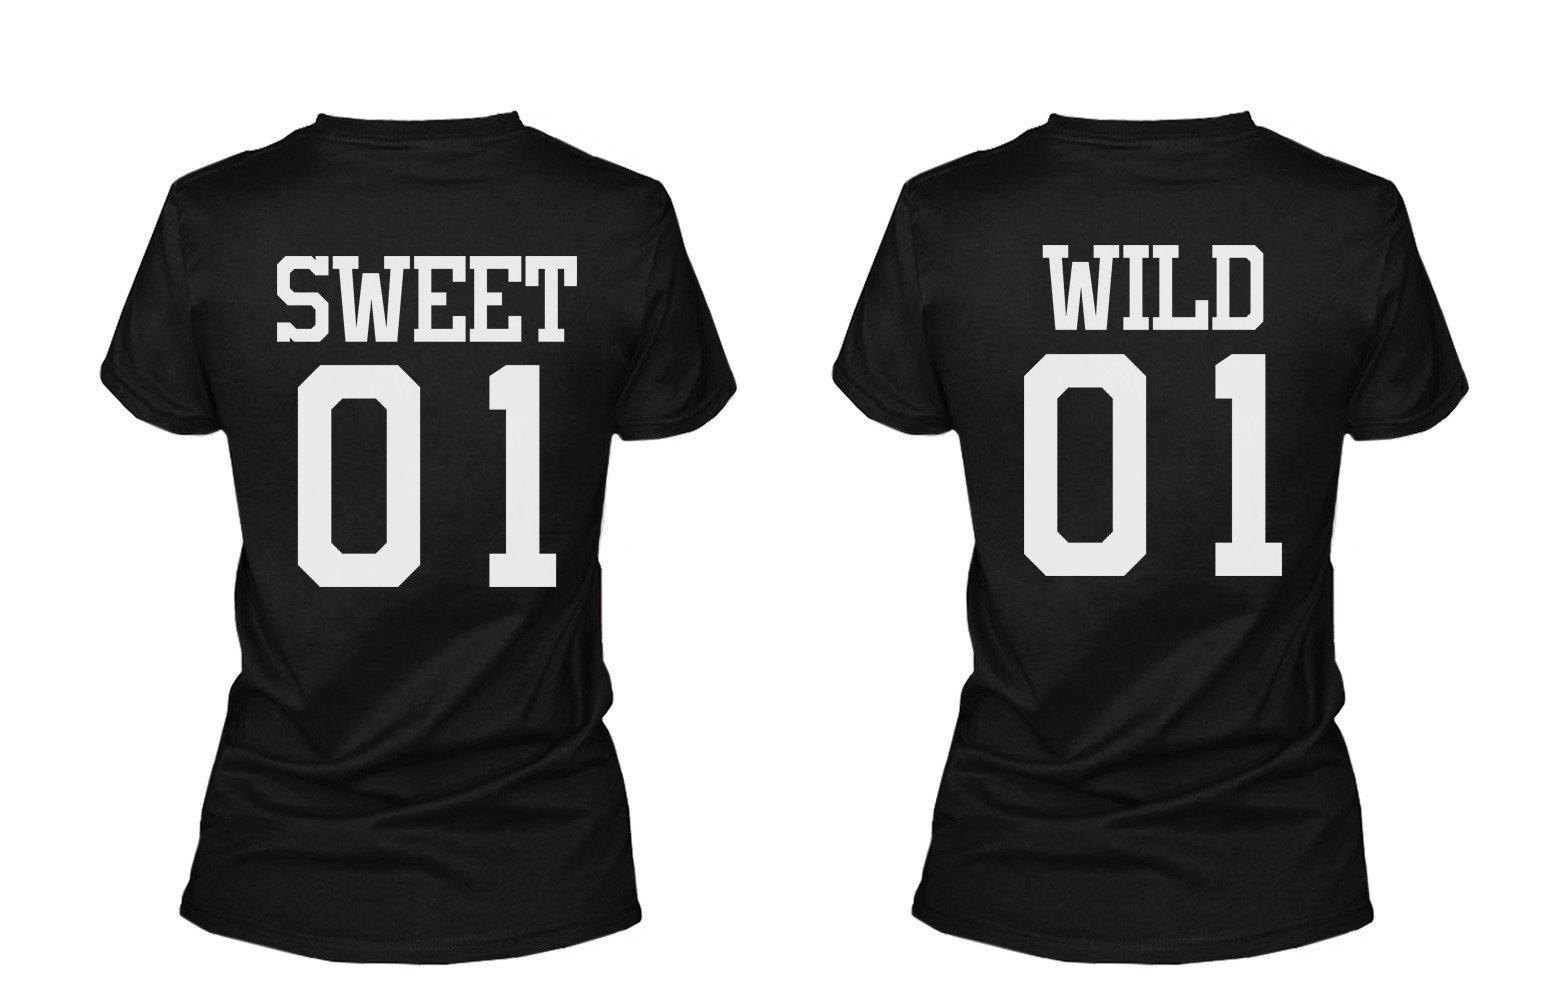 763c0332f41 Sweet 01 Wild 01 Matching Best Friends T Shirts BFF Tees For Two Girls  Friends.  30.99 from 365 Printing Inc